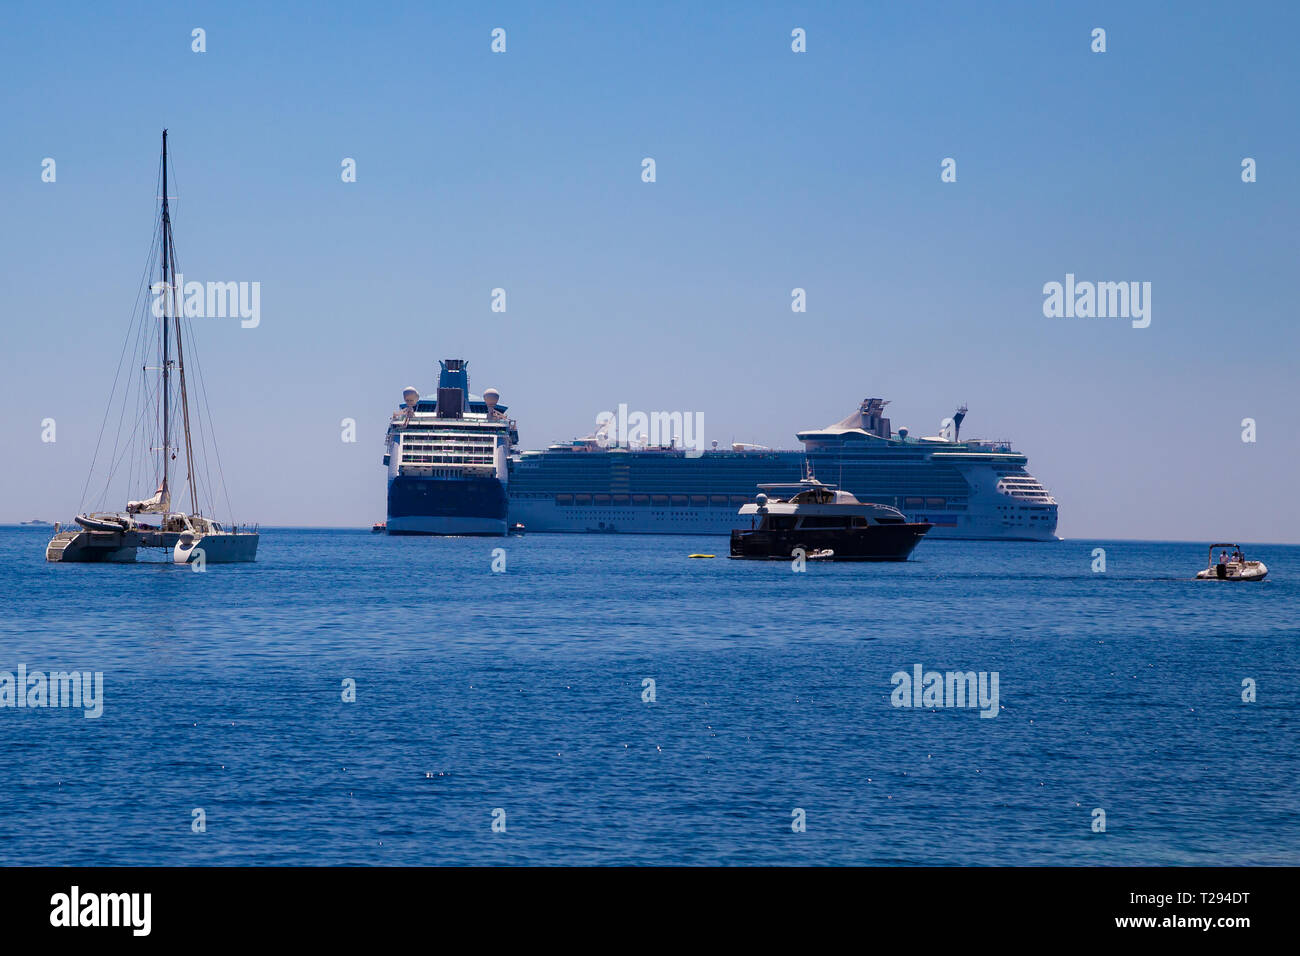 Two cruise ships and a twin hulled boat in the sea, Villefranche, France - Stock Image